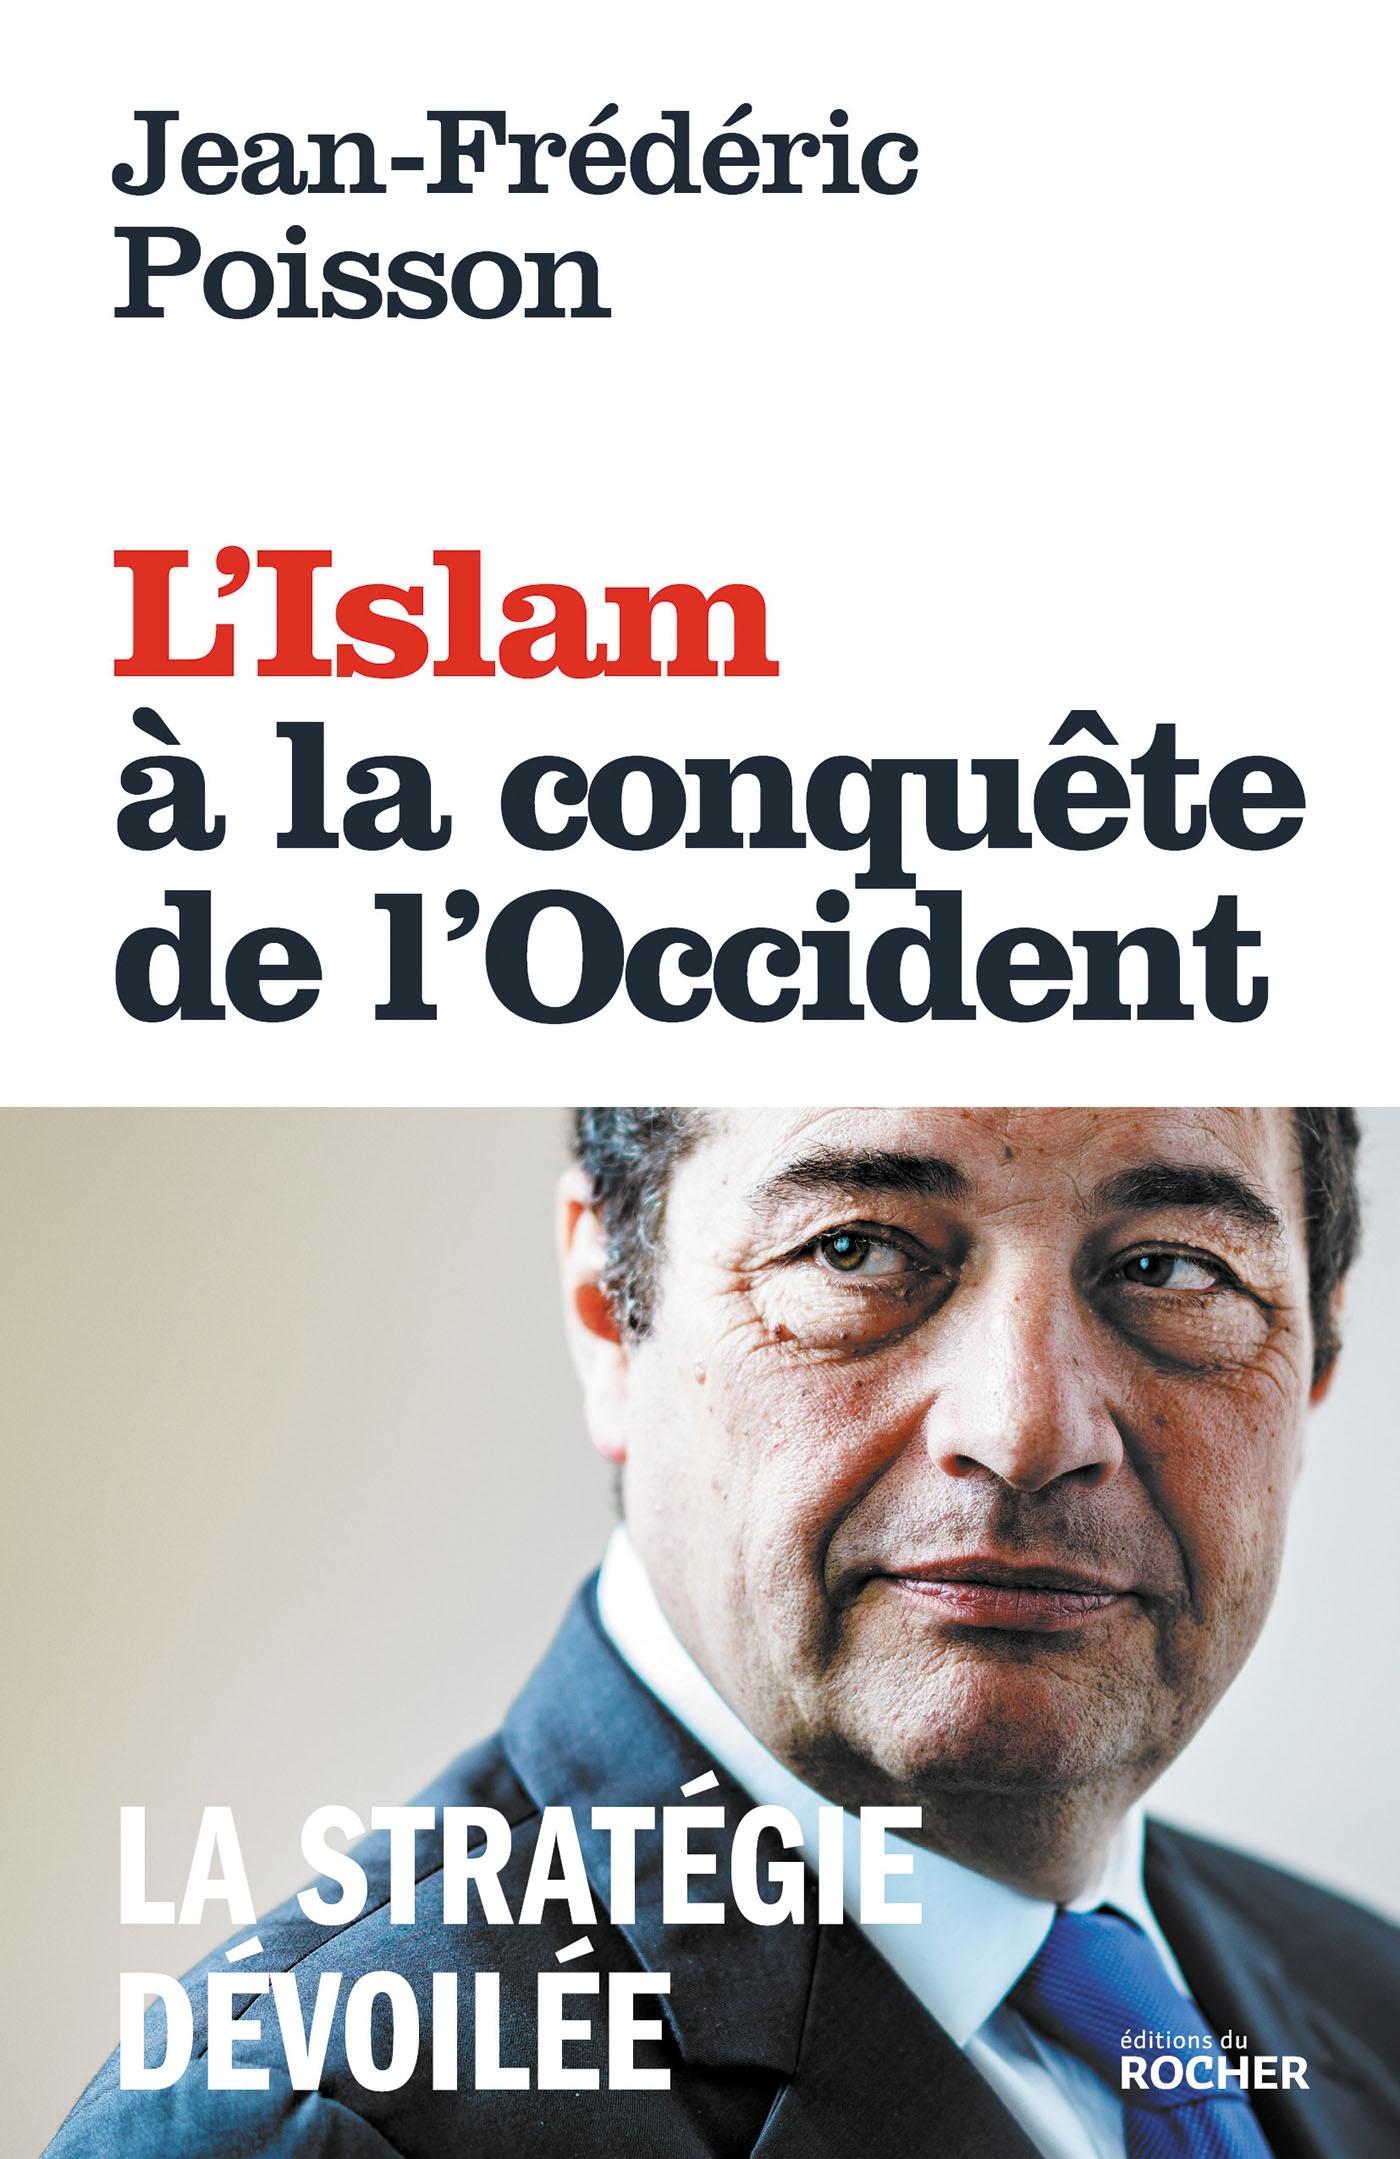 L'ISLAM A LA CONQUETE DE L'OCCIDENT - LA STRATEGIE DEVOILEE